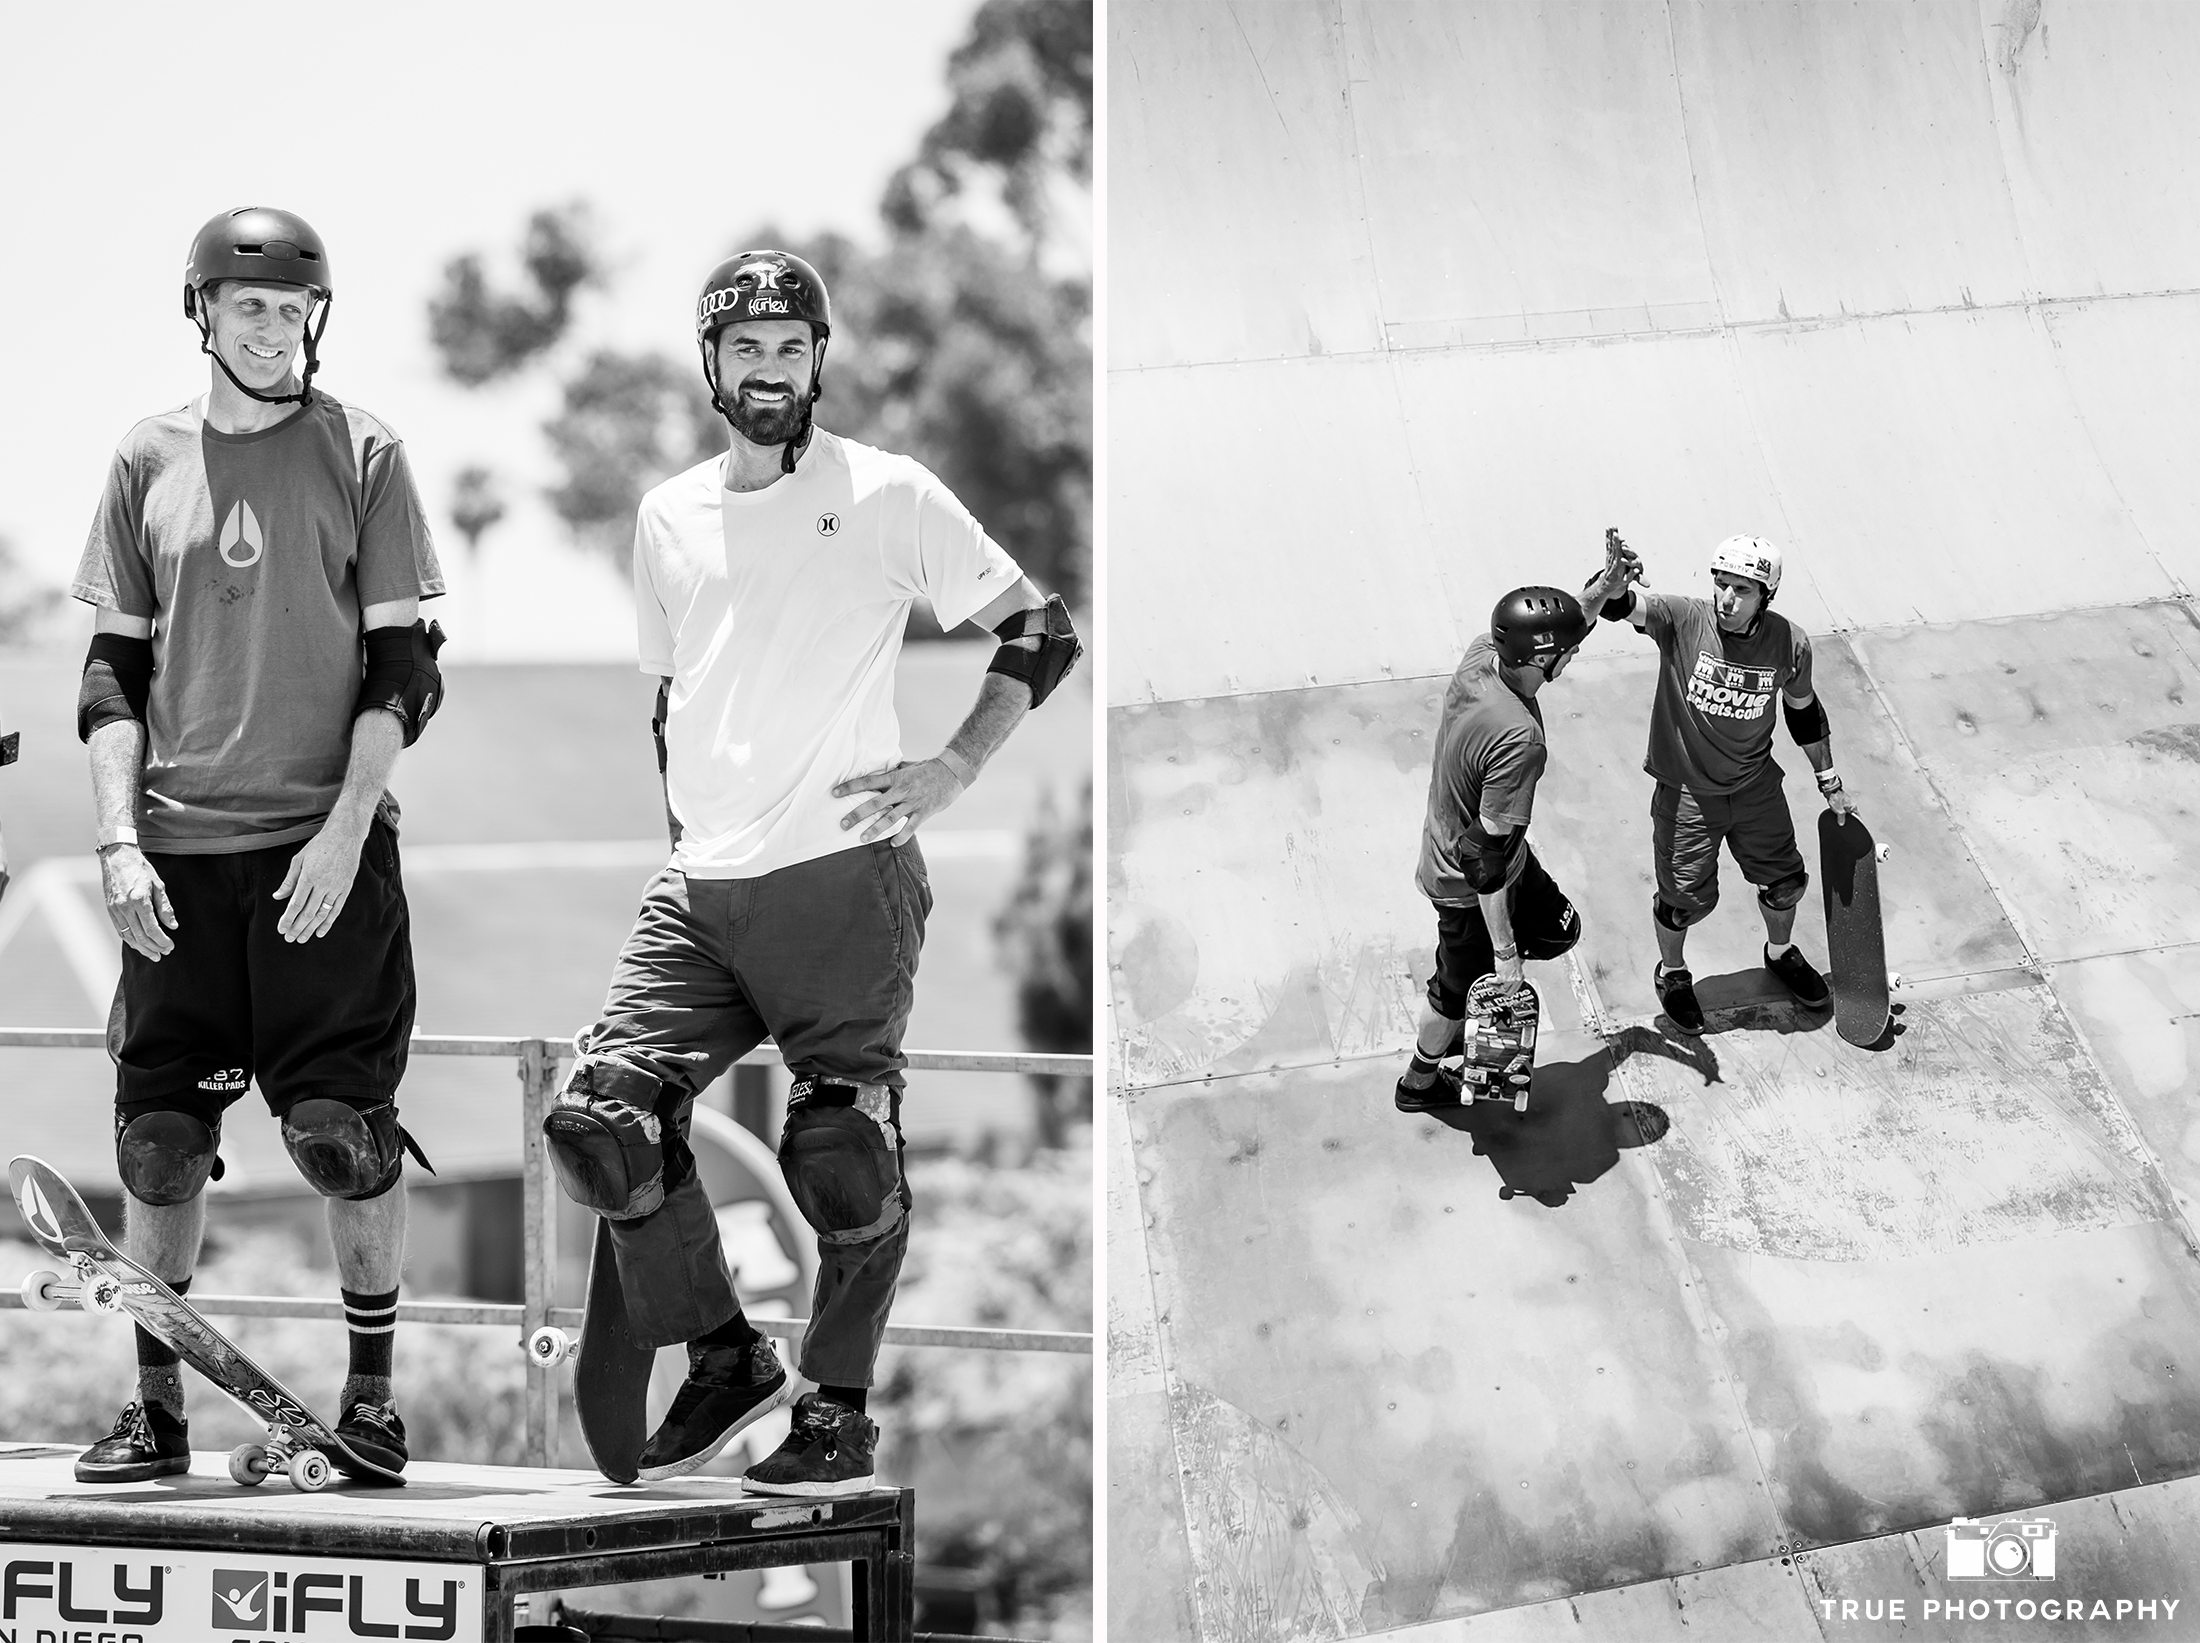 Tony Hawk Bob Burnquist Skateboarding Half Pipe San Diego Clash at Clairemont